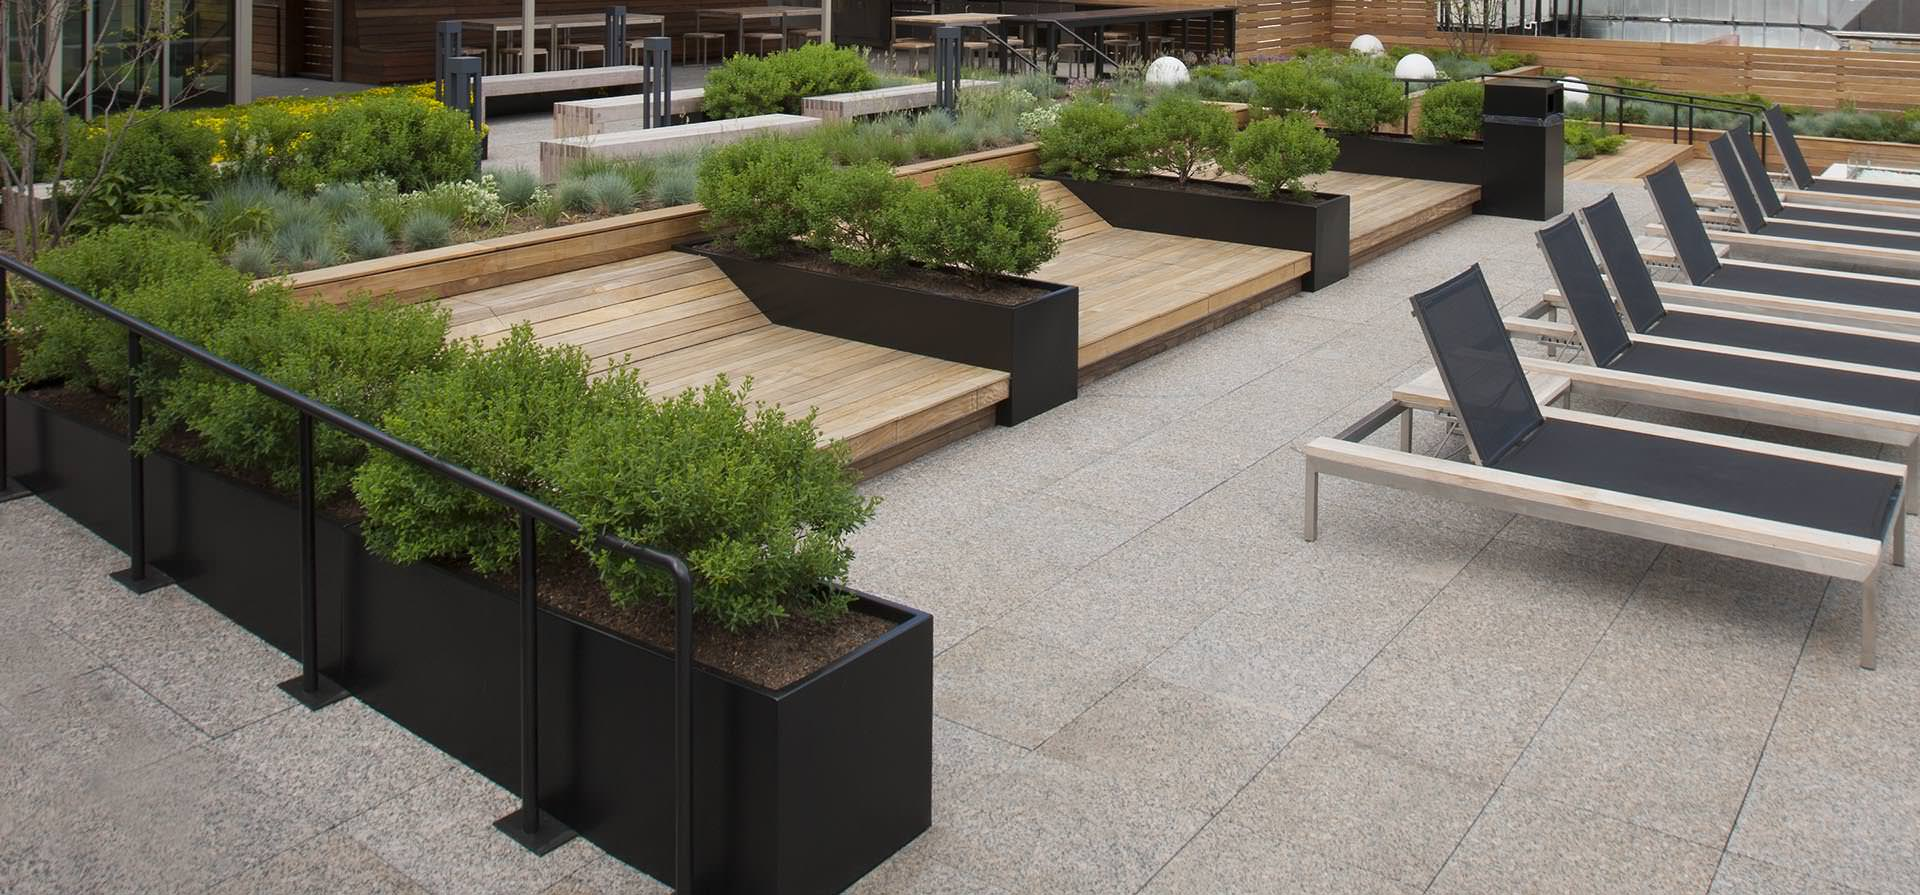 Wilshire Planters on Rooftop – Photo by Scott Shigley